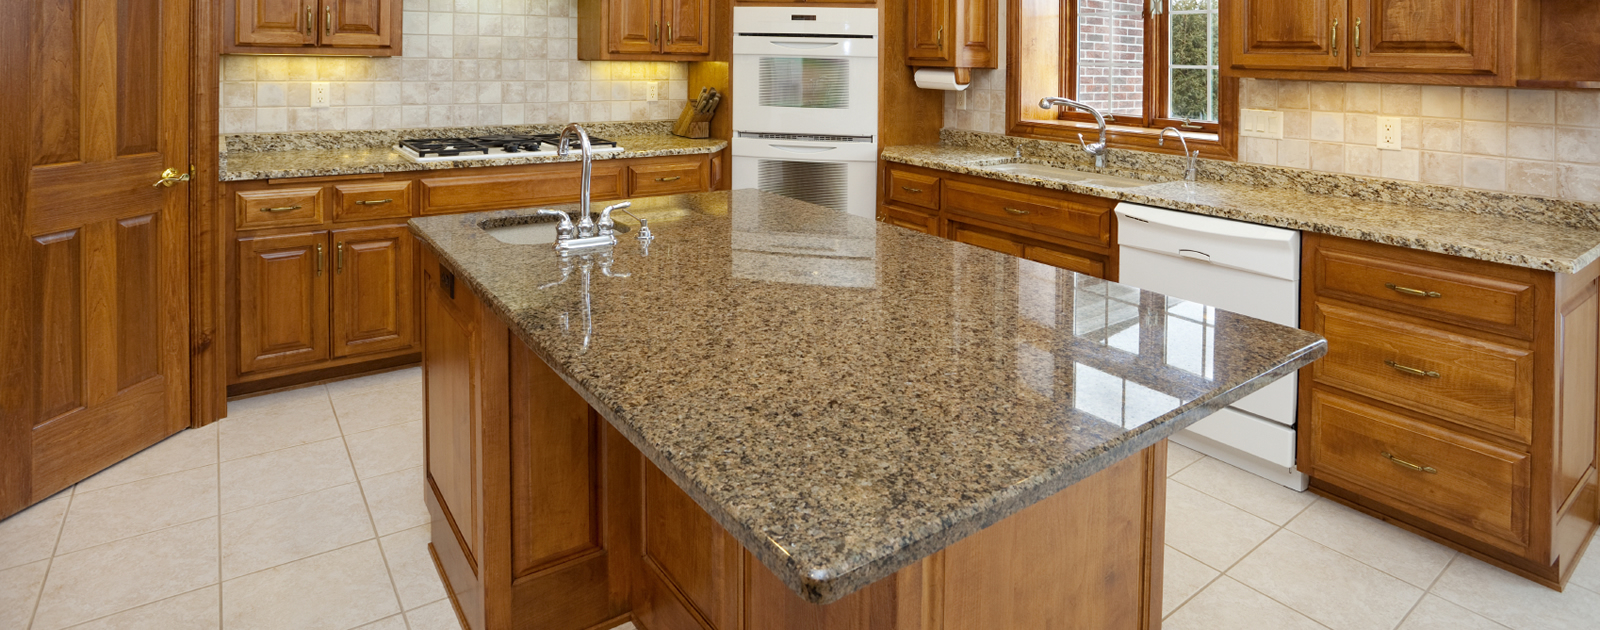 countertops island lowes white espresso fabricators countertop porcelain contemporary cabinet discount with design collection kitchen kitchn laminate and